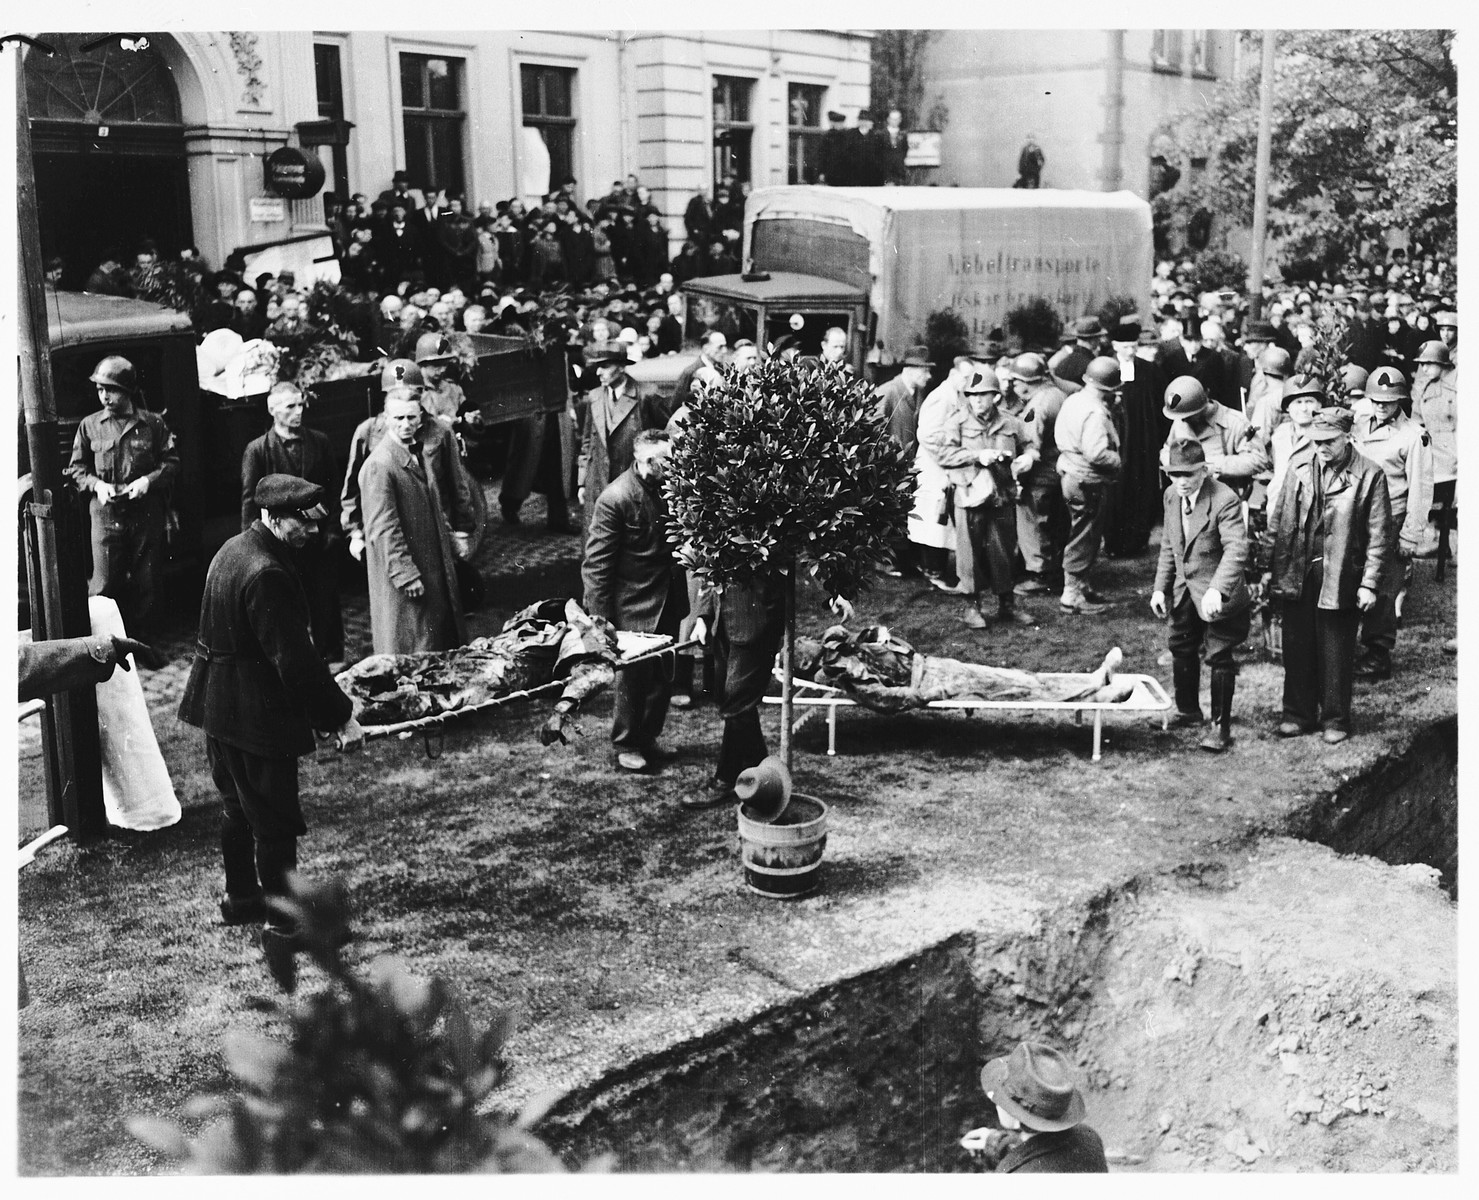 Under the direction of American soldiers, German civilians bury the bodies of 71 political prisoners, exhumed from a mass grave near Solingen-Ohligs, in new graves in front of the city hall.    The victims, most of whom were taken from Luettringhausen prison, were shot and buried by the Gestapo following orders to eliminate all Reich enemies just before the end of the war.